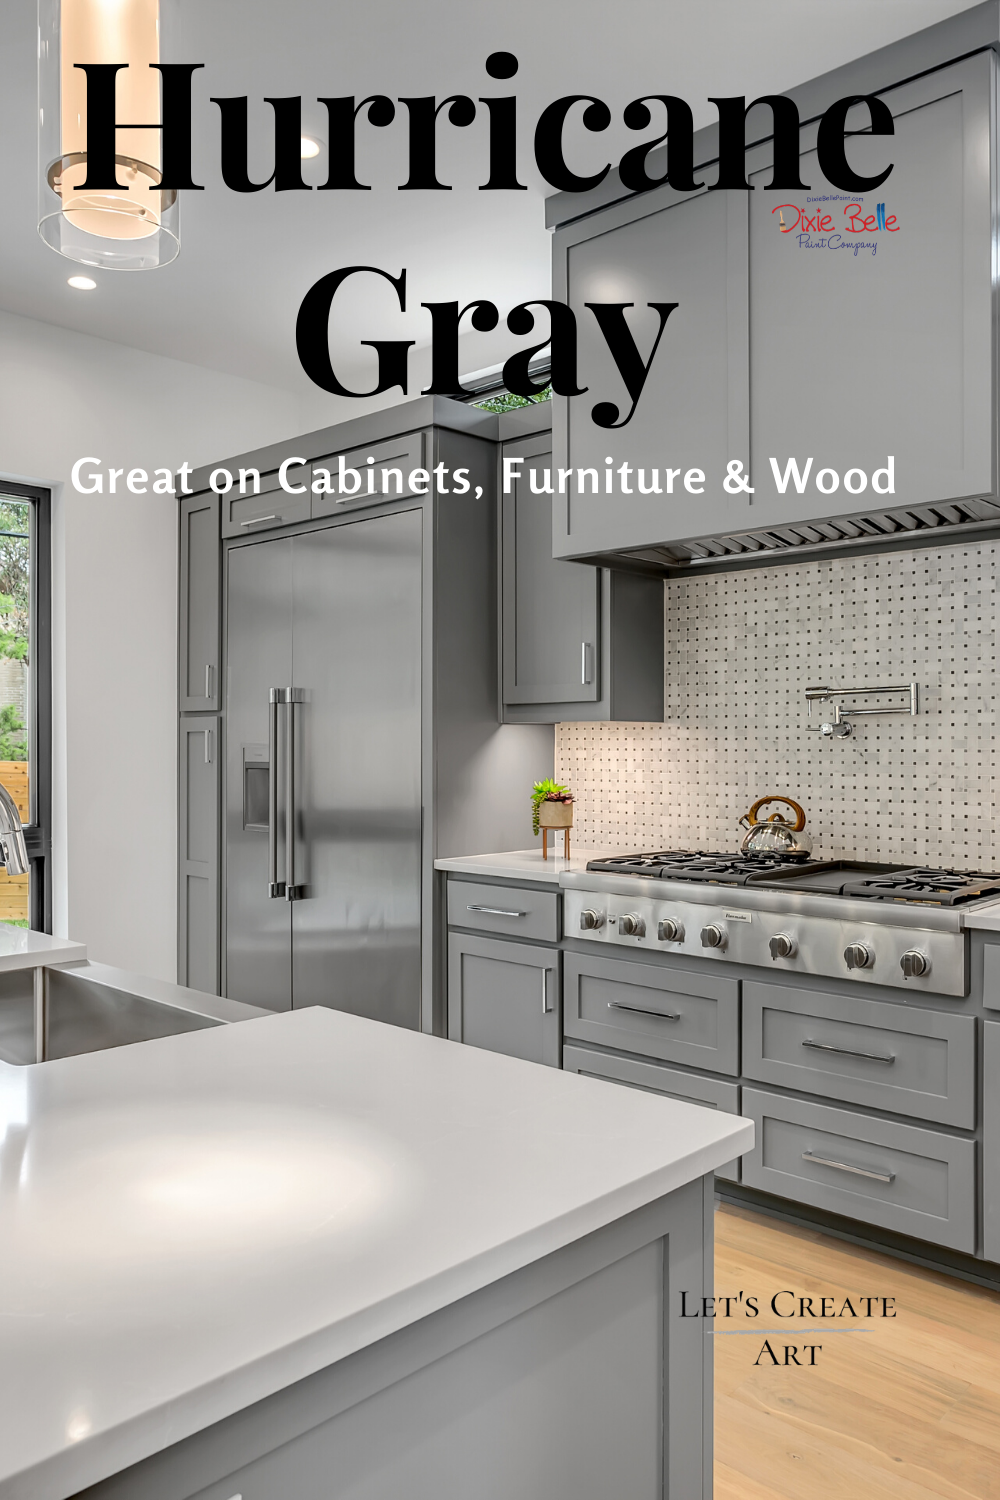 Gray Paint Colors For Kitchen Cabinets Furniture And More Dixie B In 2020 Kitchen Cabinets Painted Grey Chalk Paint Kitchen Cabinets Painted Kitchen Cabinets Colors